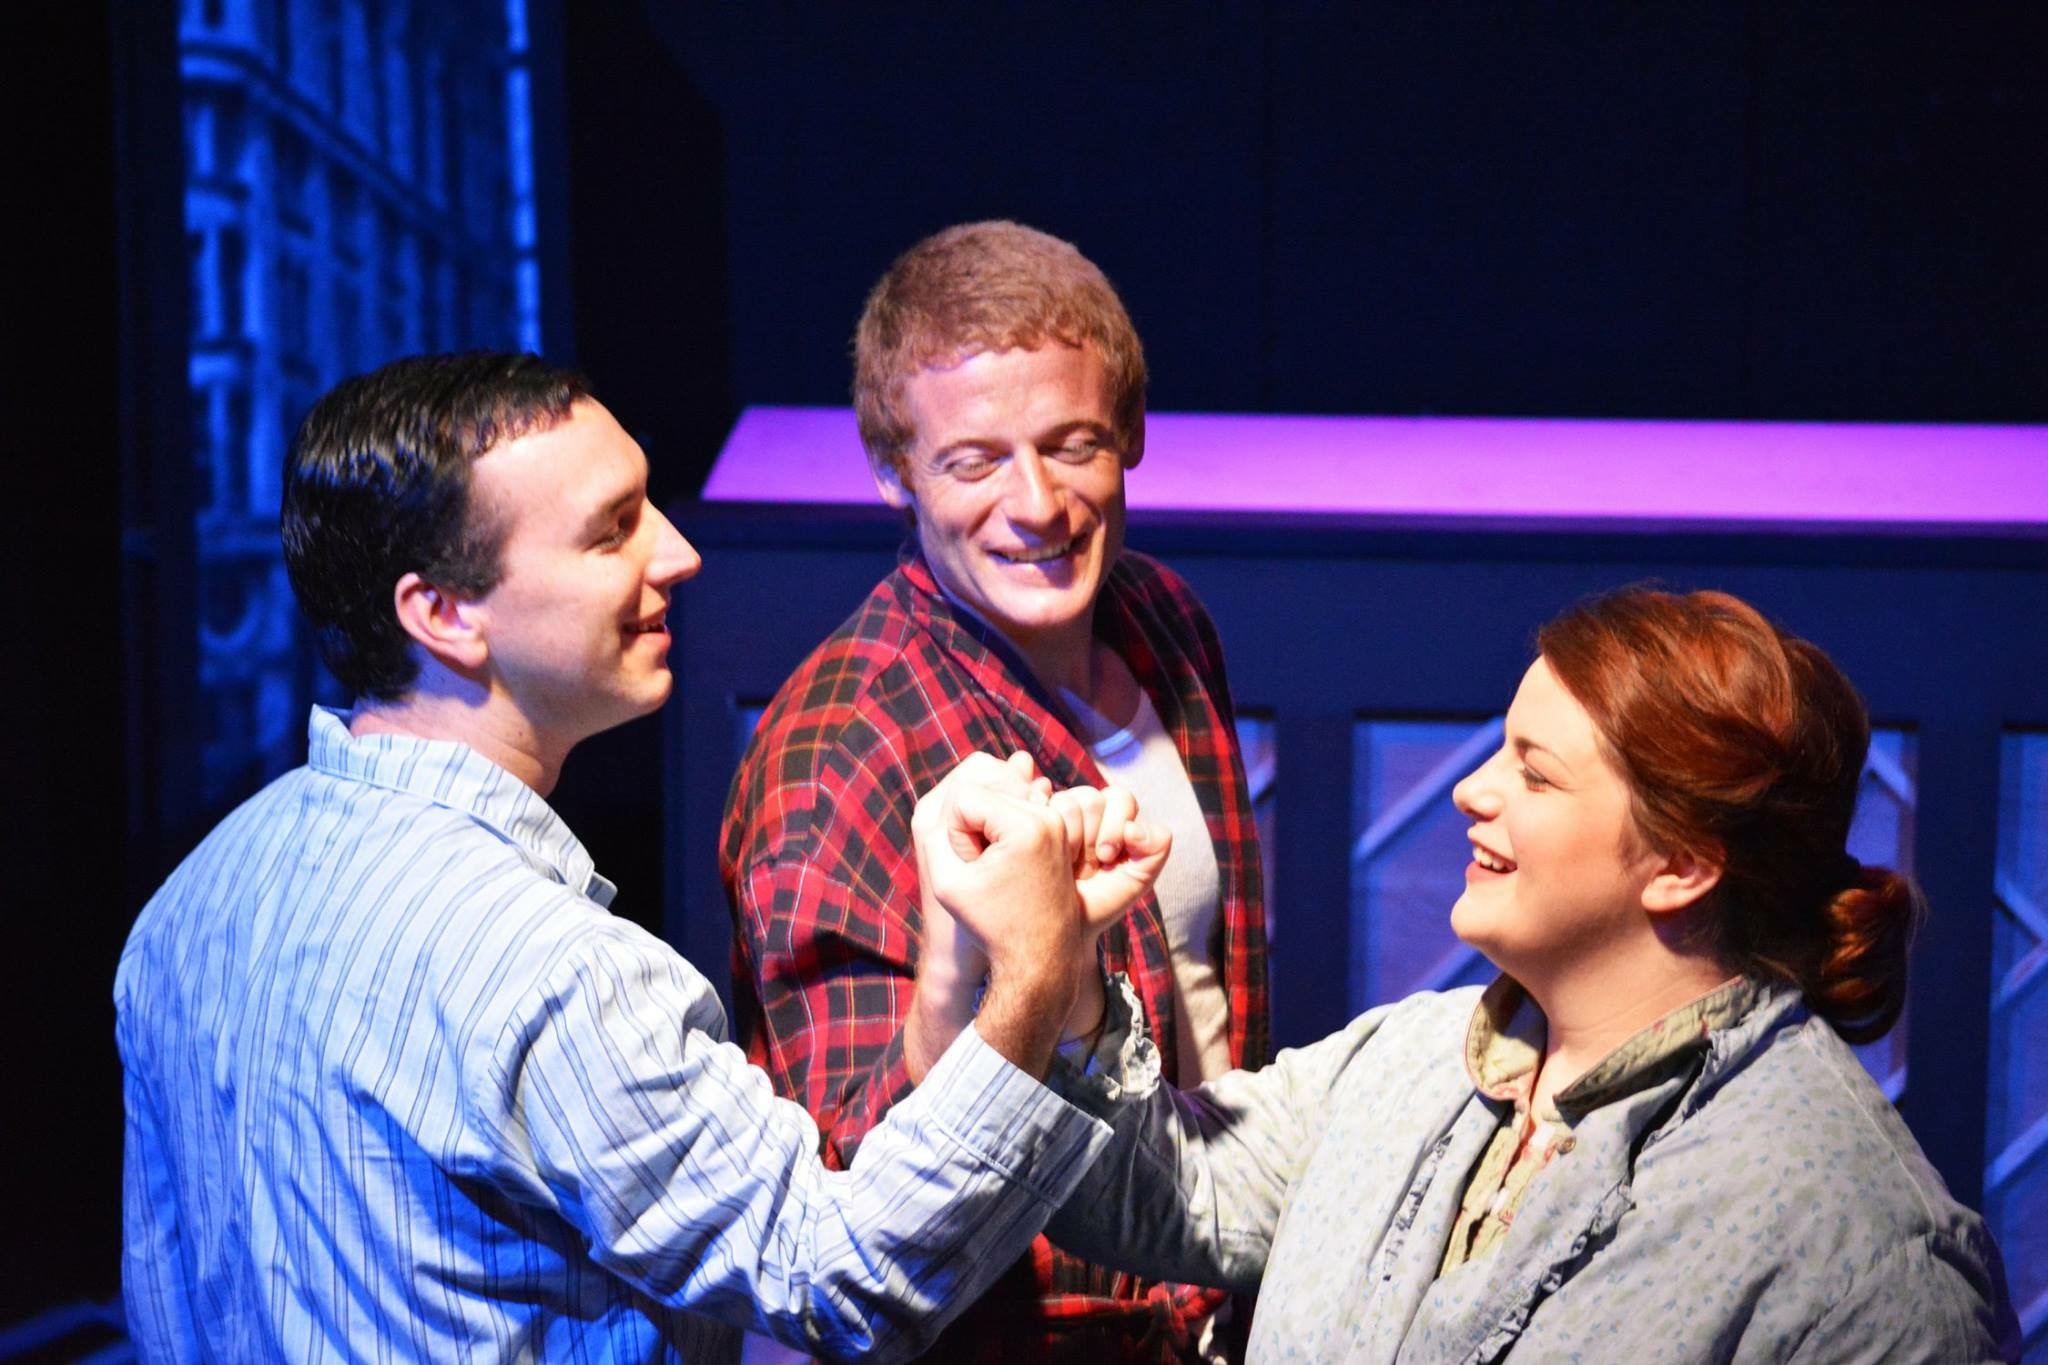 (From left): Charley Kringas (Adam Schuler), Franklin Shepherd (Jared Walsh), and Mary Flynn (Andrea Giangreco) make a pact for their future friendship in The F.U.D.G.E. Theatre Company's  Merrily We Roll Along  (Photo Credit: Matt Phillipps)